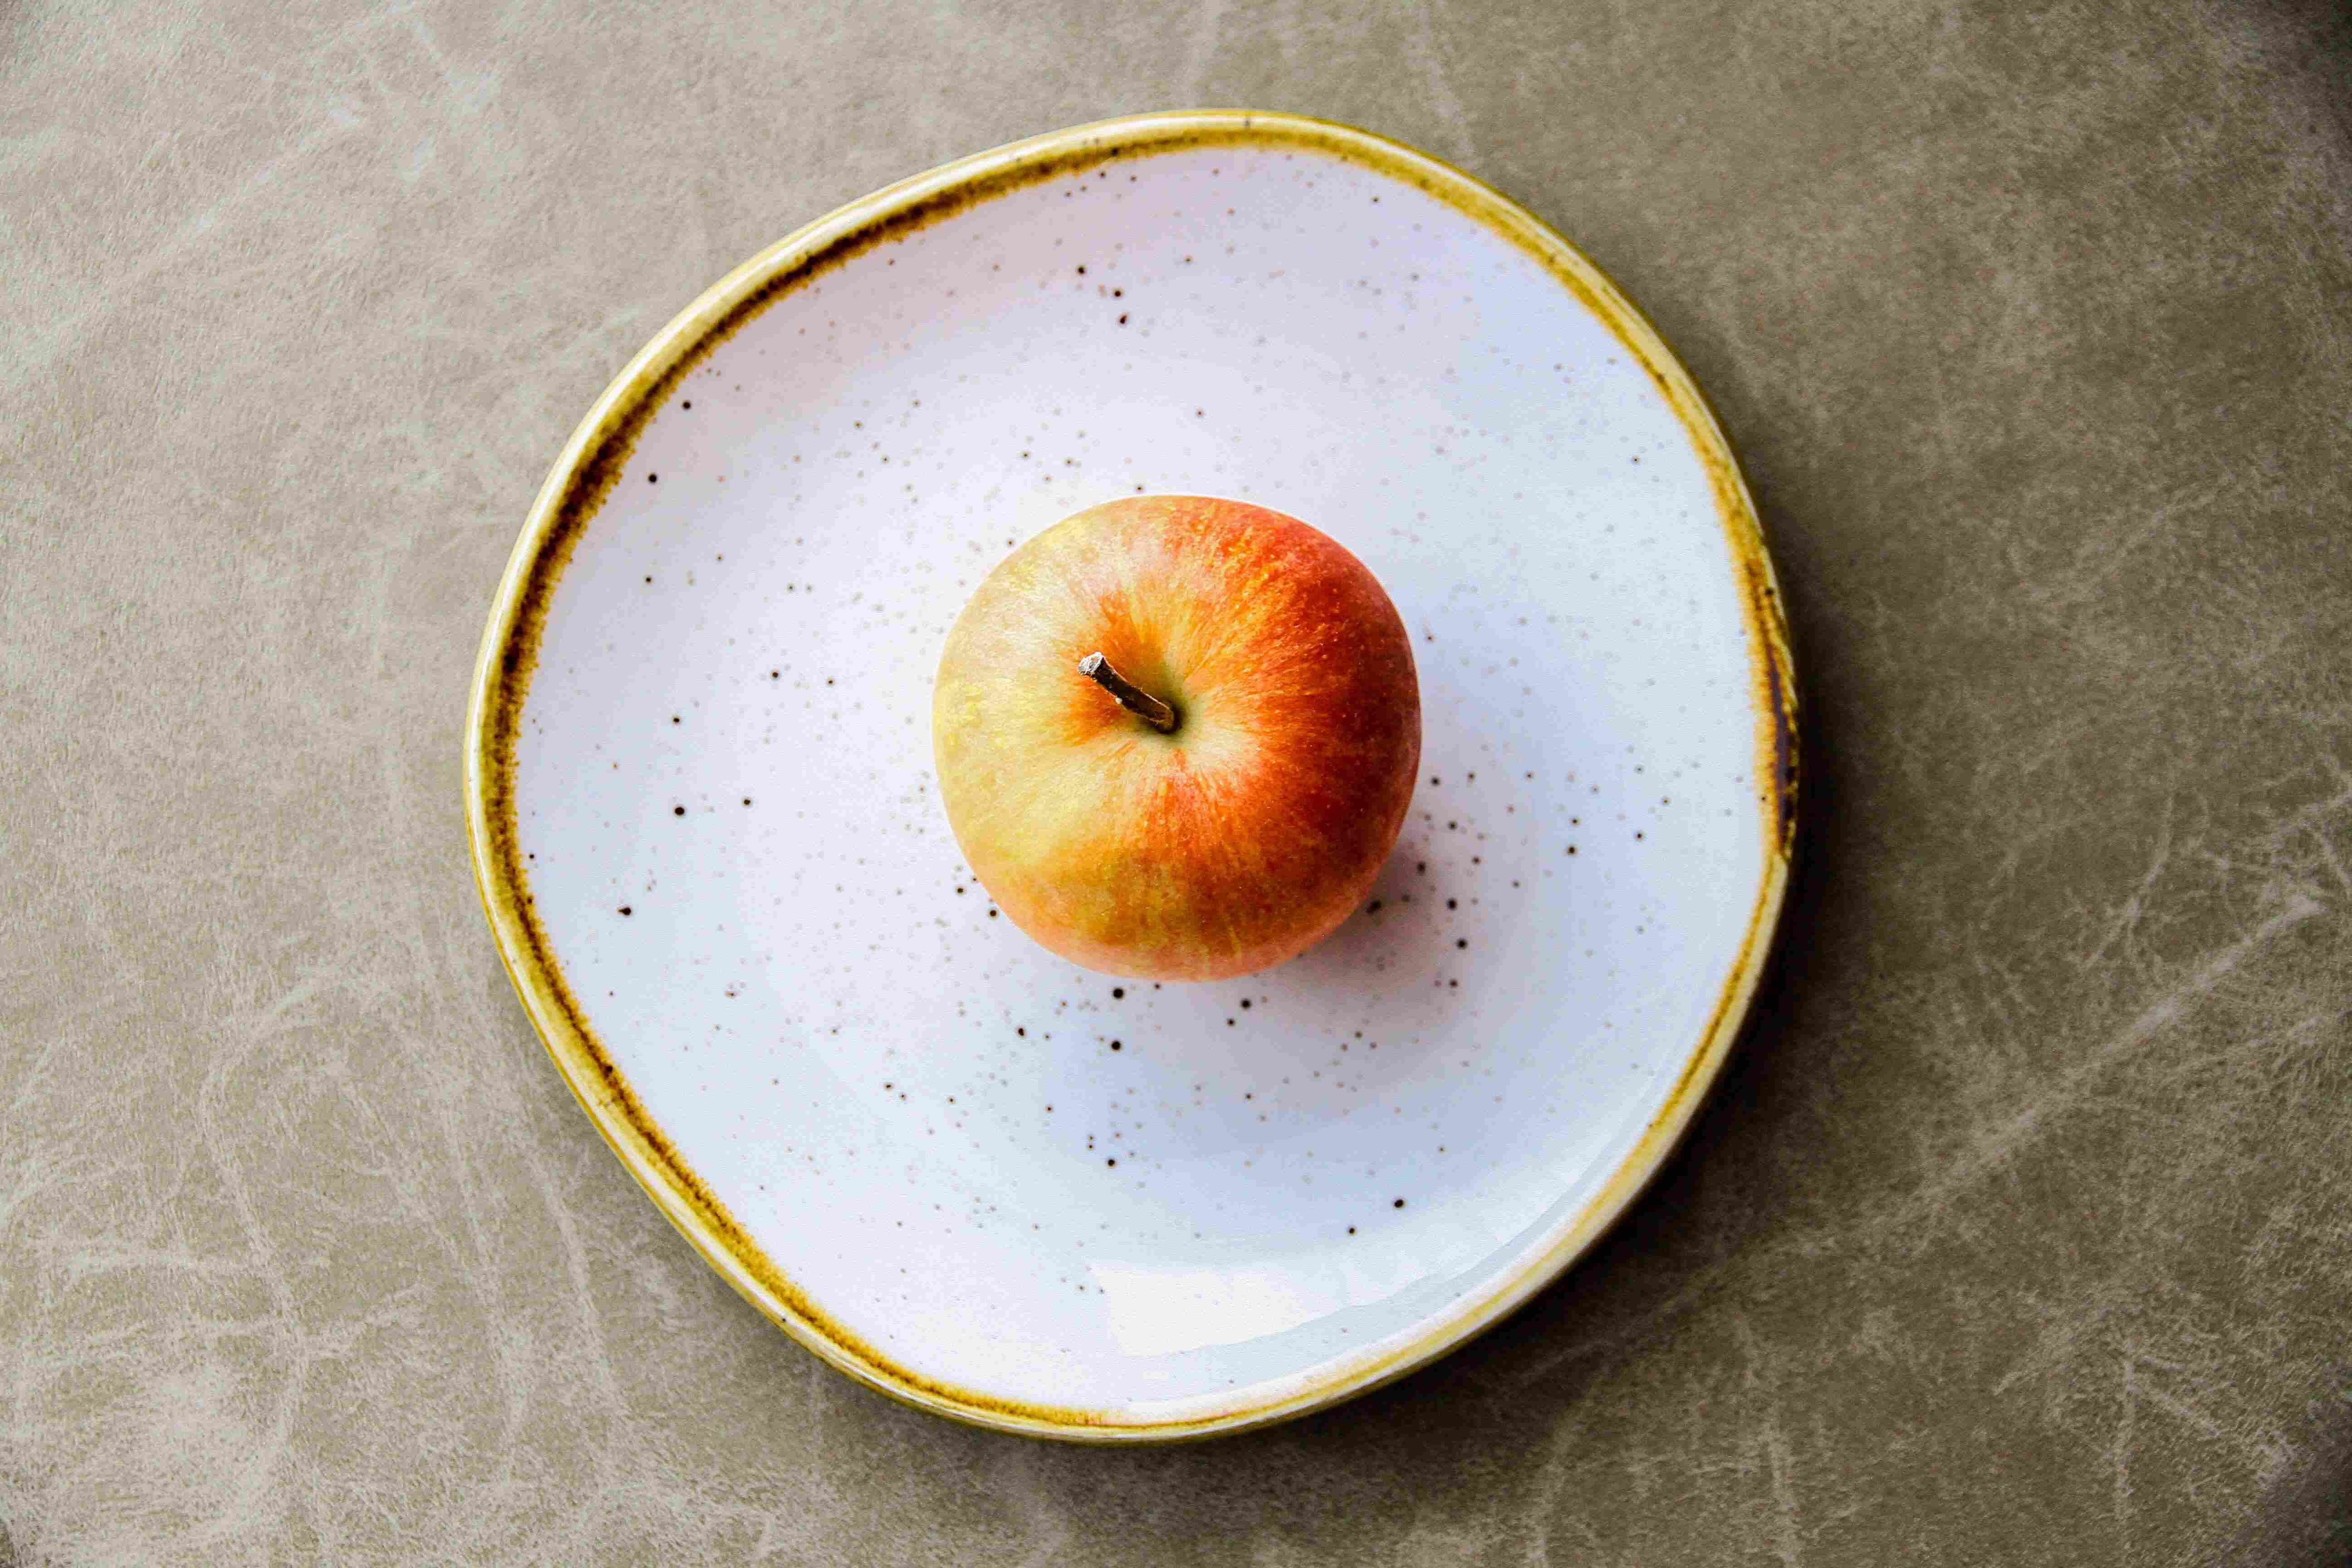 a single apple on a plate